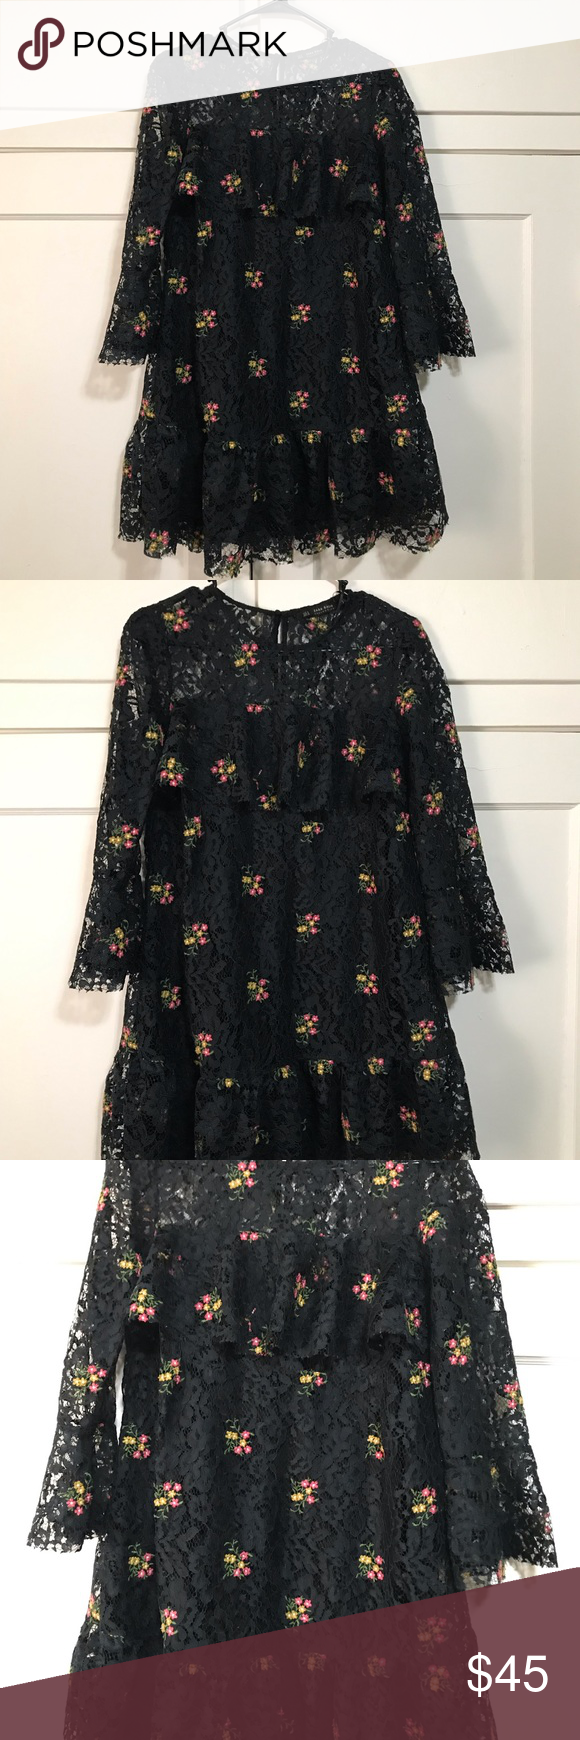 ZARA Basic lace embroidered dress in 2020 Embroidered